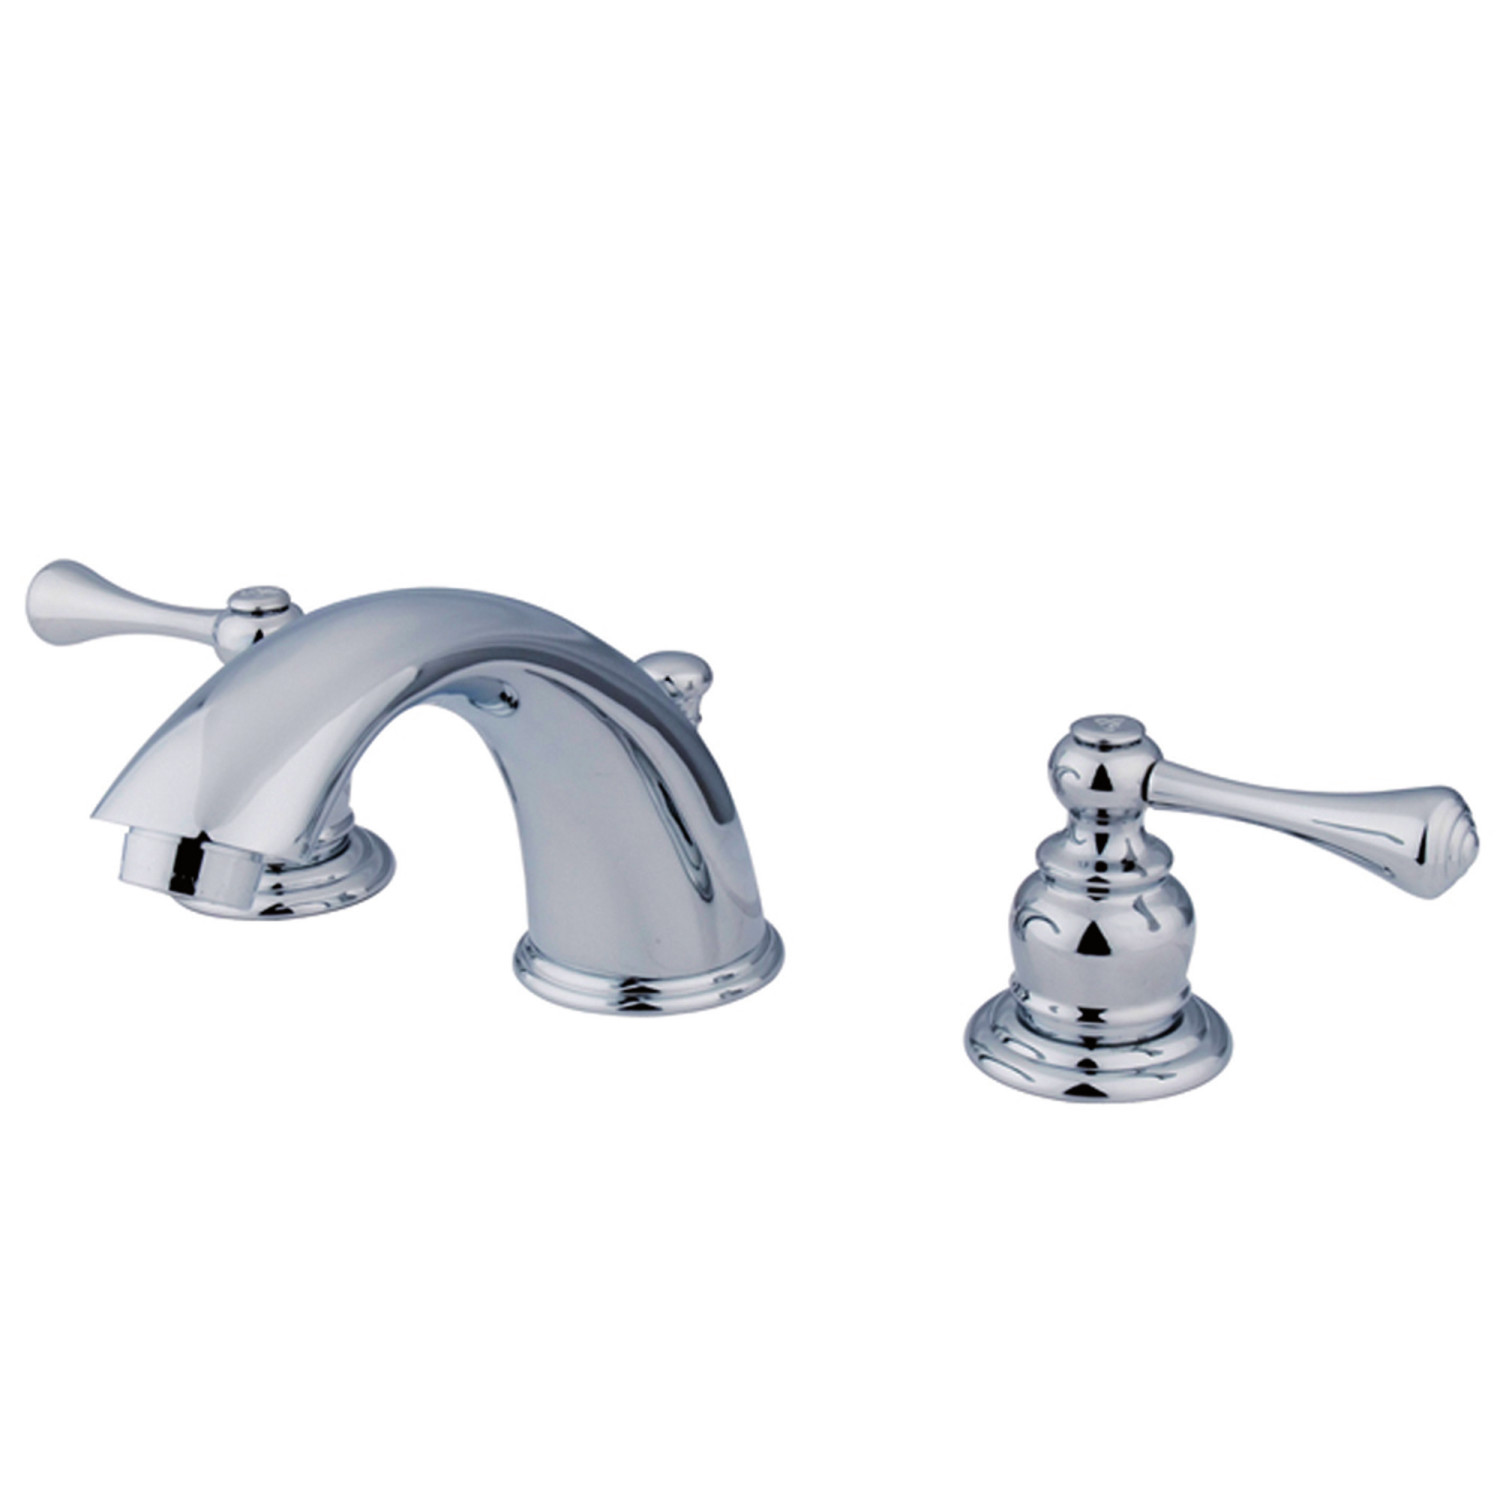 Traditional 2-Handle 3-Hole Deck Mounted Widespread Bathroom Faucet with Plastic Pop-Up Polished Chrome